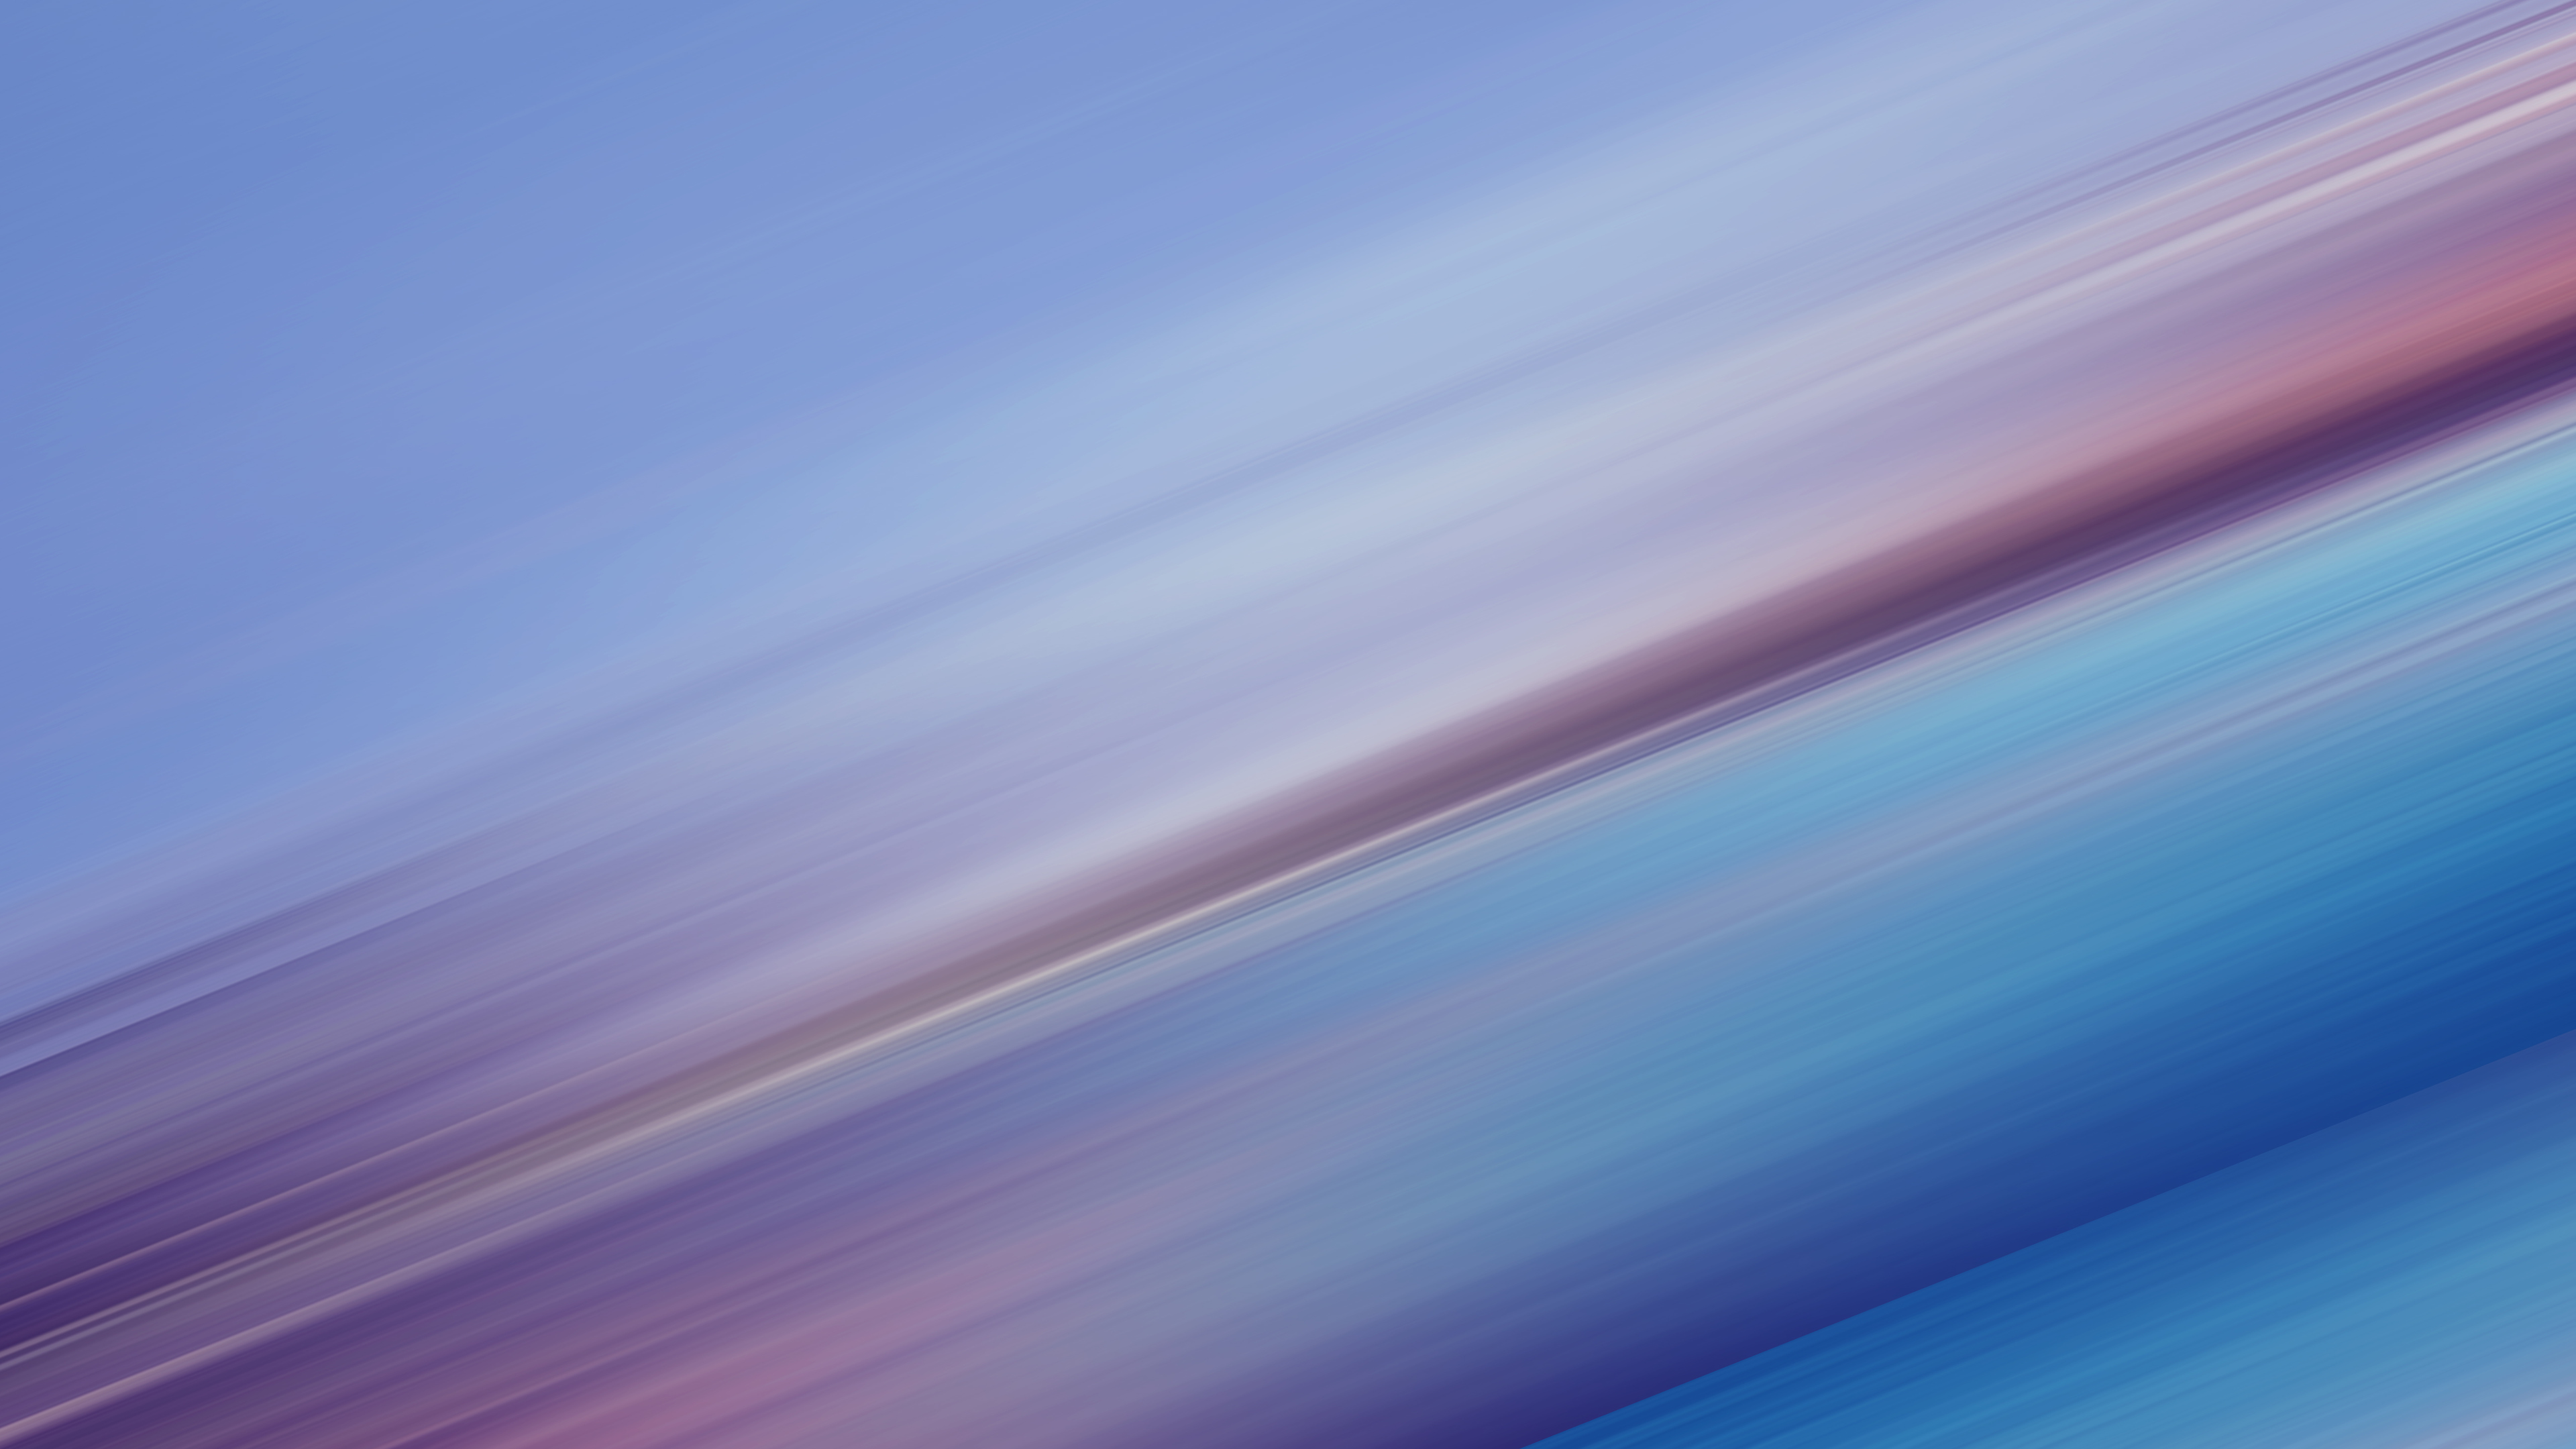 abstract motion 4k 1553075254 - Abstract Motion 4k - hd-wallpapers, deviantart wallpapers, abstract wallpapers, 5k wallpapers, 4k-wallpapers